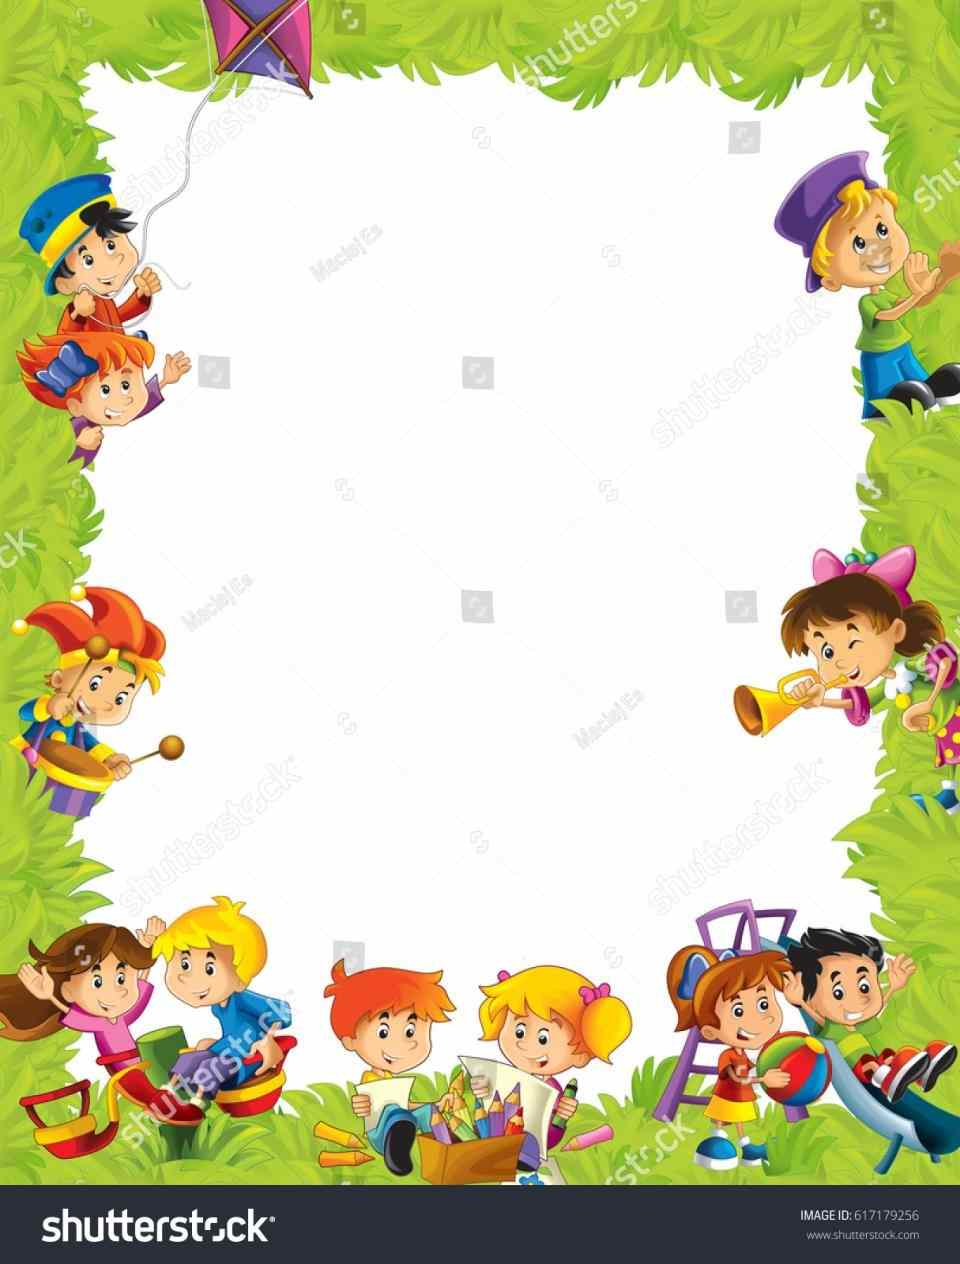 Playground border clipart kids frame drawing style stock » Clipart.